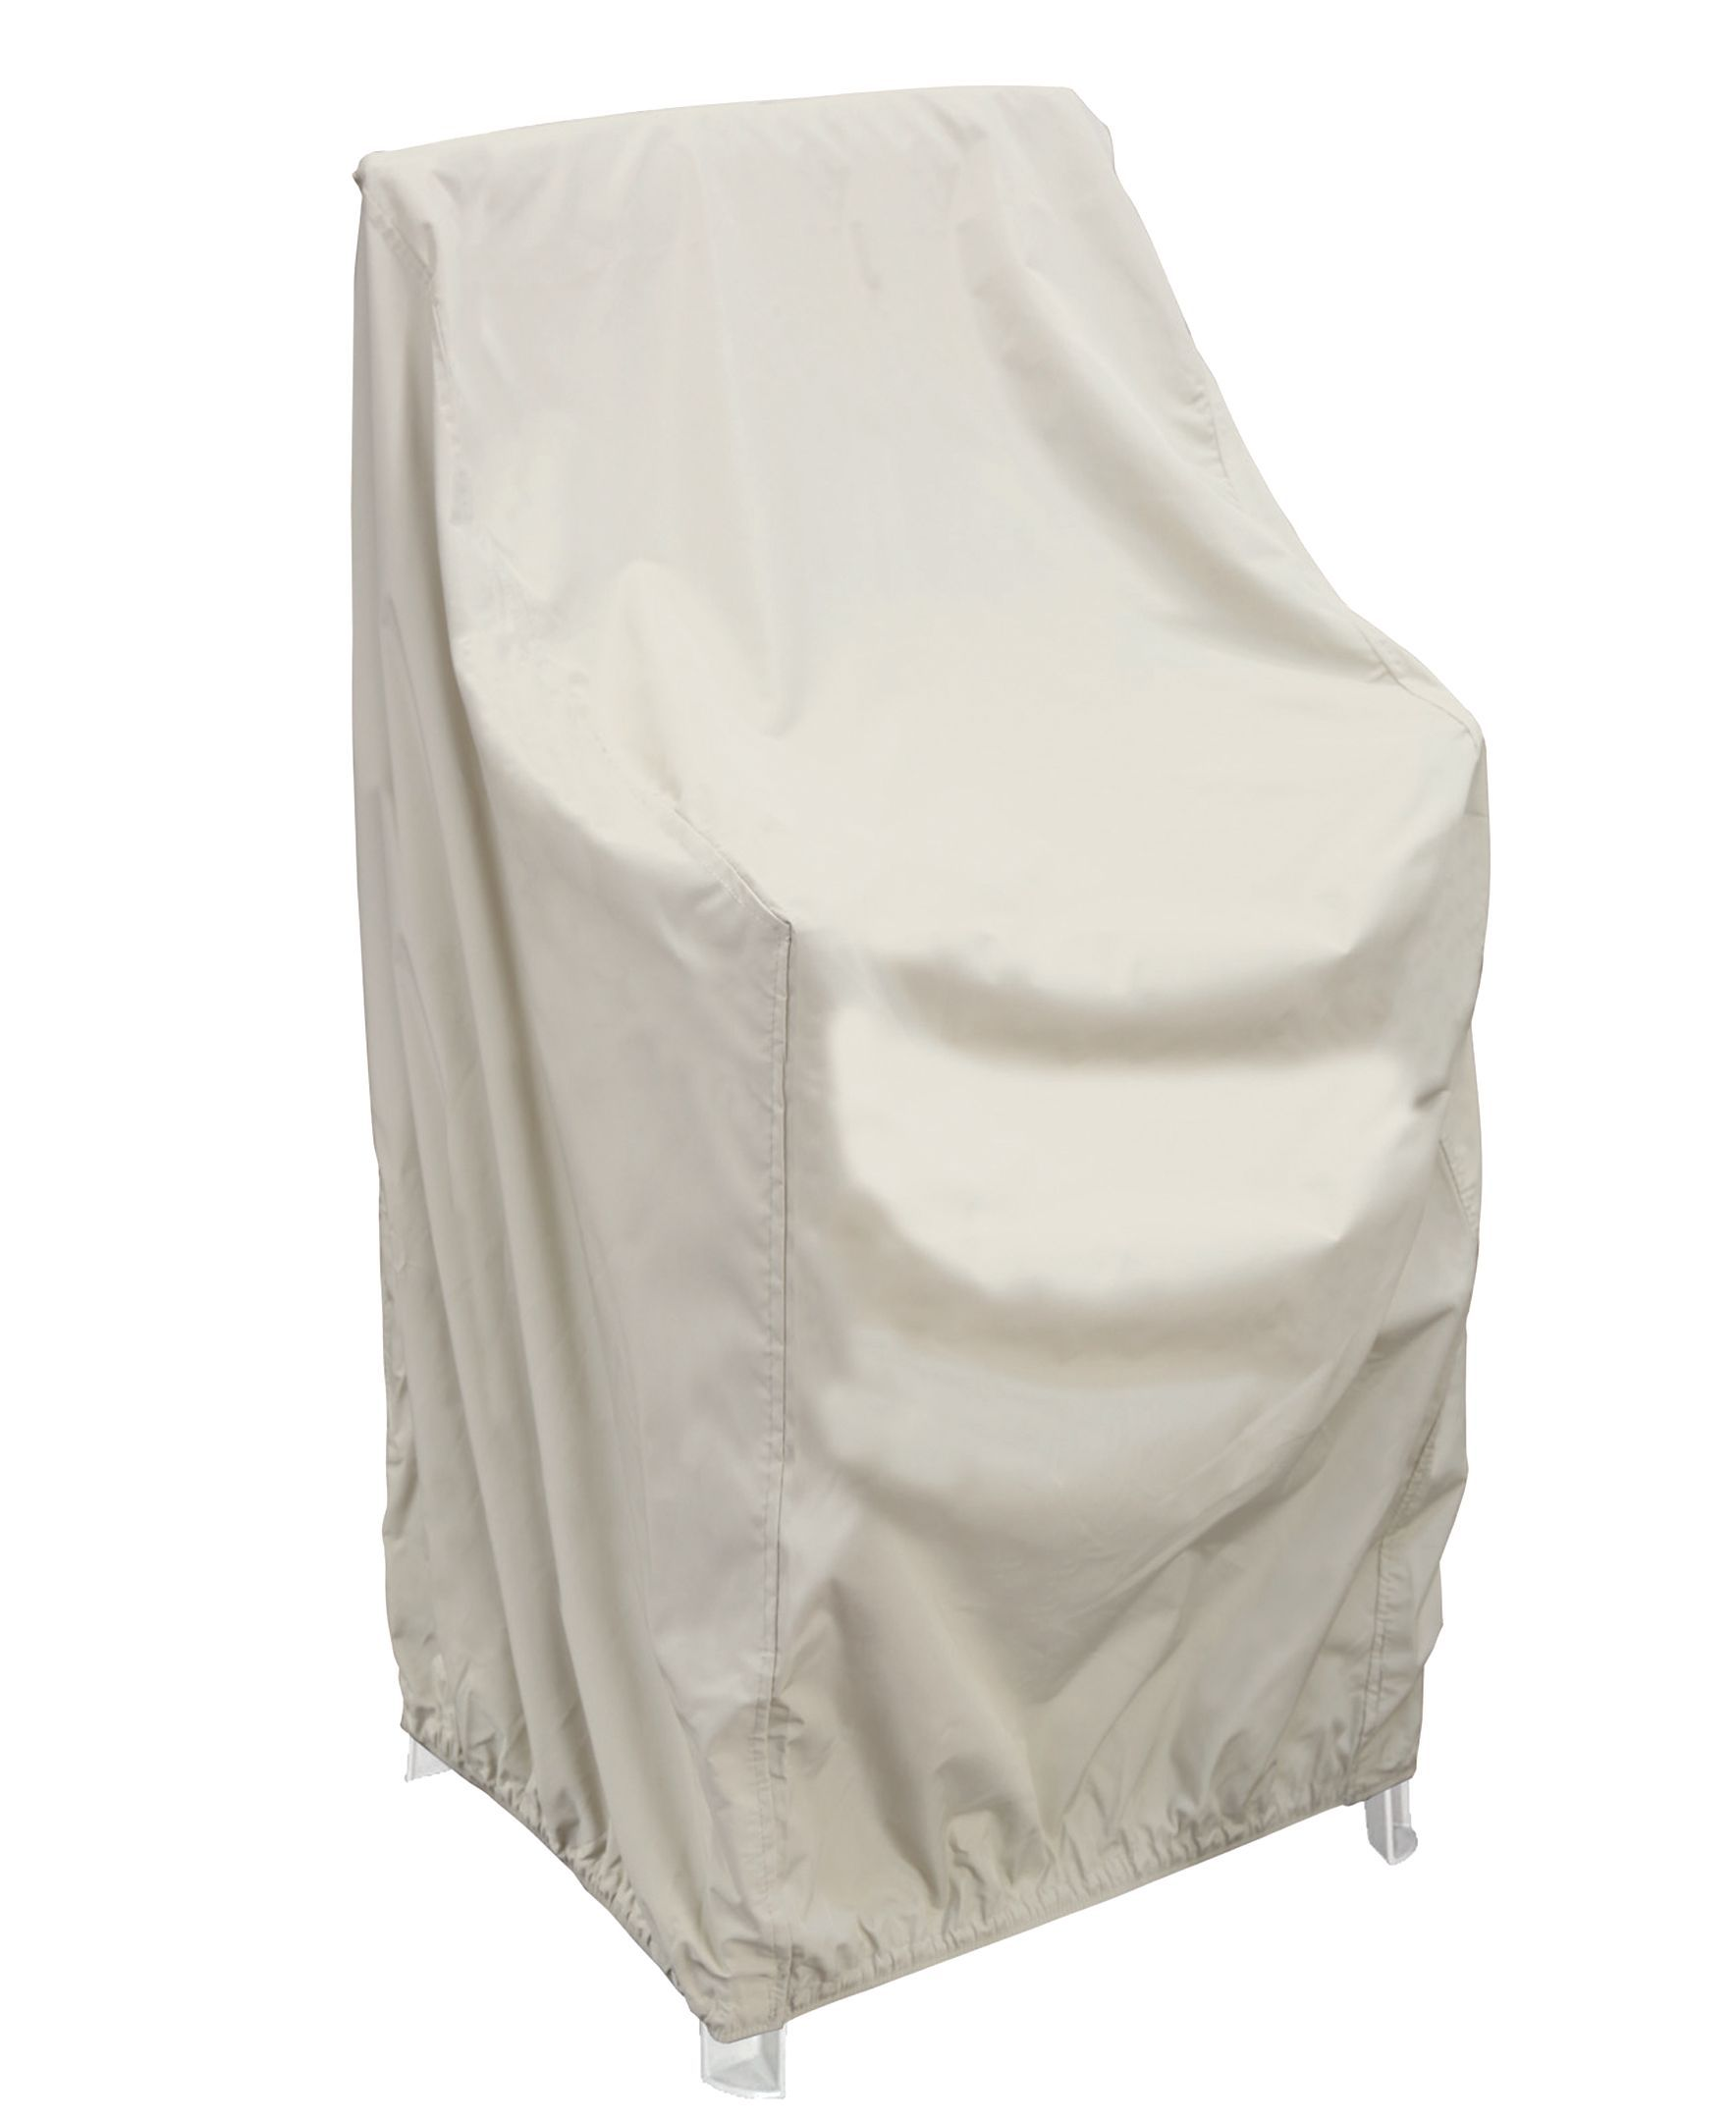 Outdoor Patio Furniture Cover, Stack of Chairs